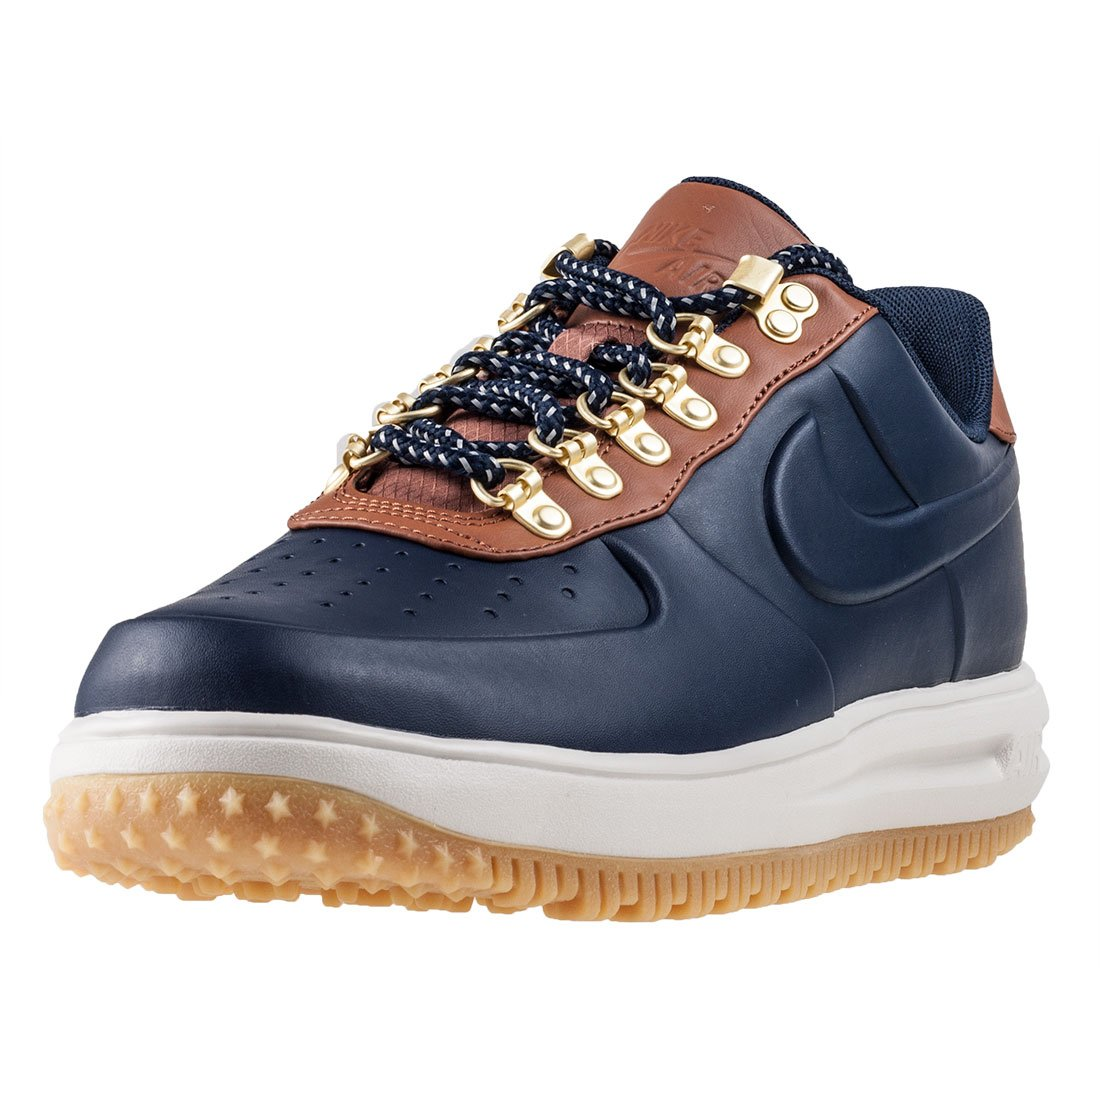 9e72d6bc2ab6 Galleon - NIKE Men s Lunar Force 1 Duckboot Low Obsidian Brown (9.5 D(M) US)